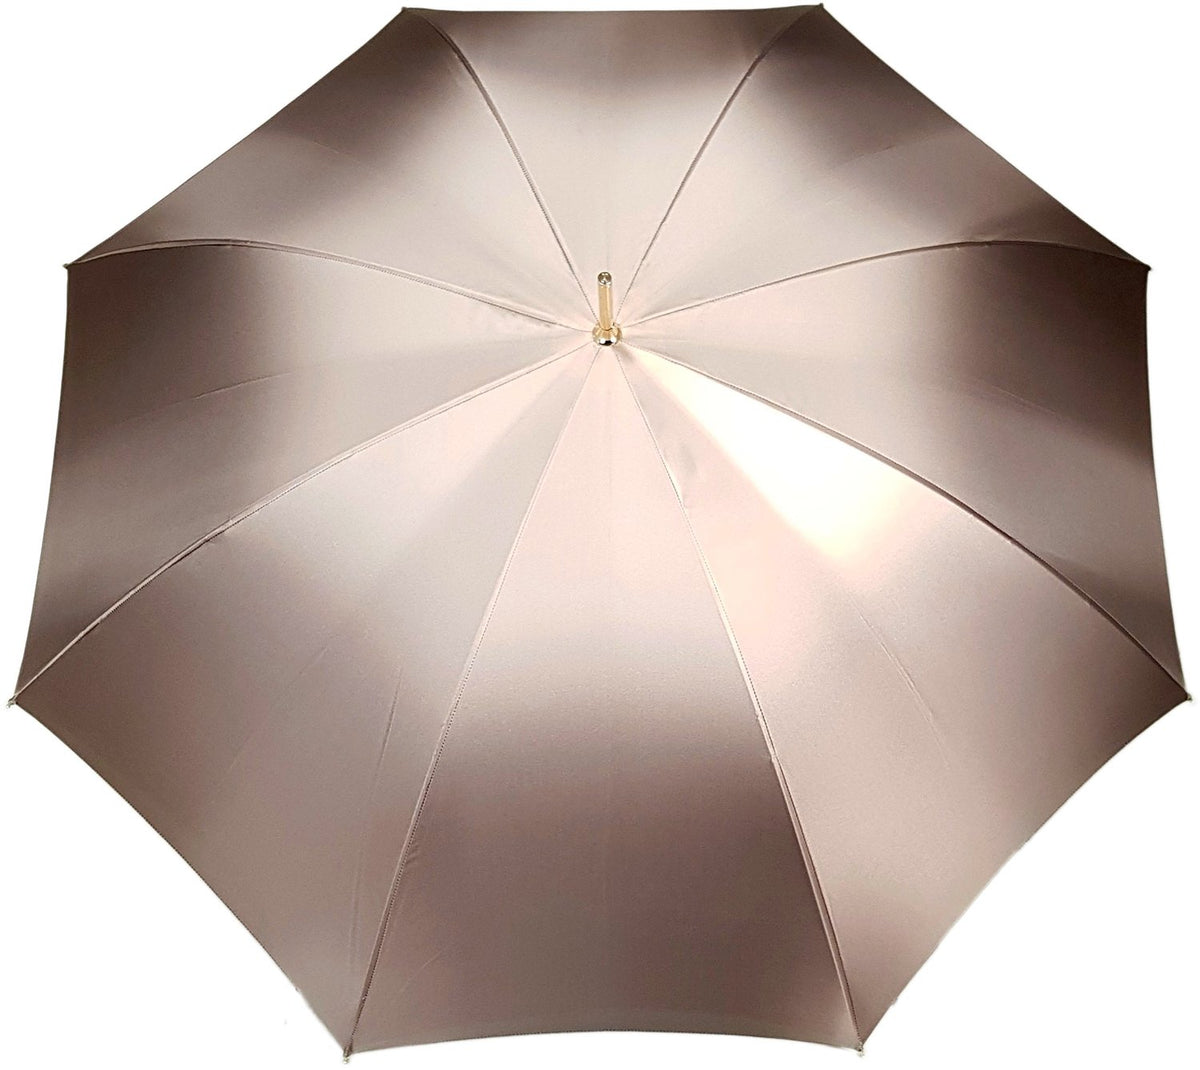 Fantastic Double Canopy Luxury Ladies Umbrella